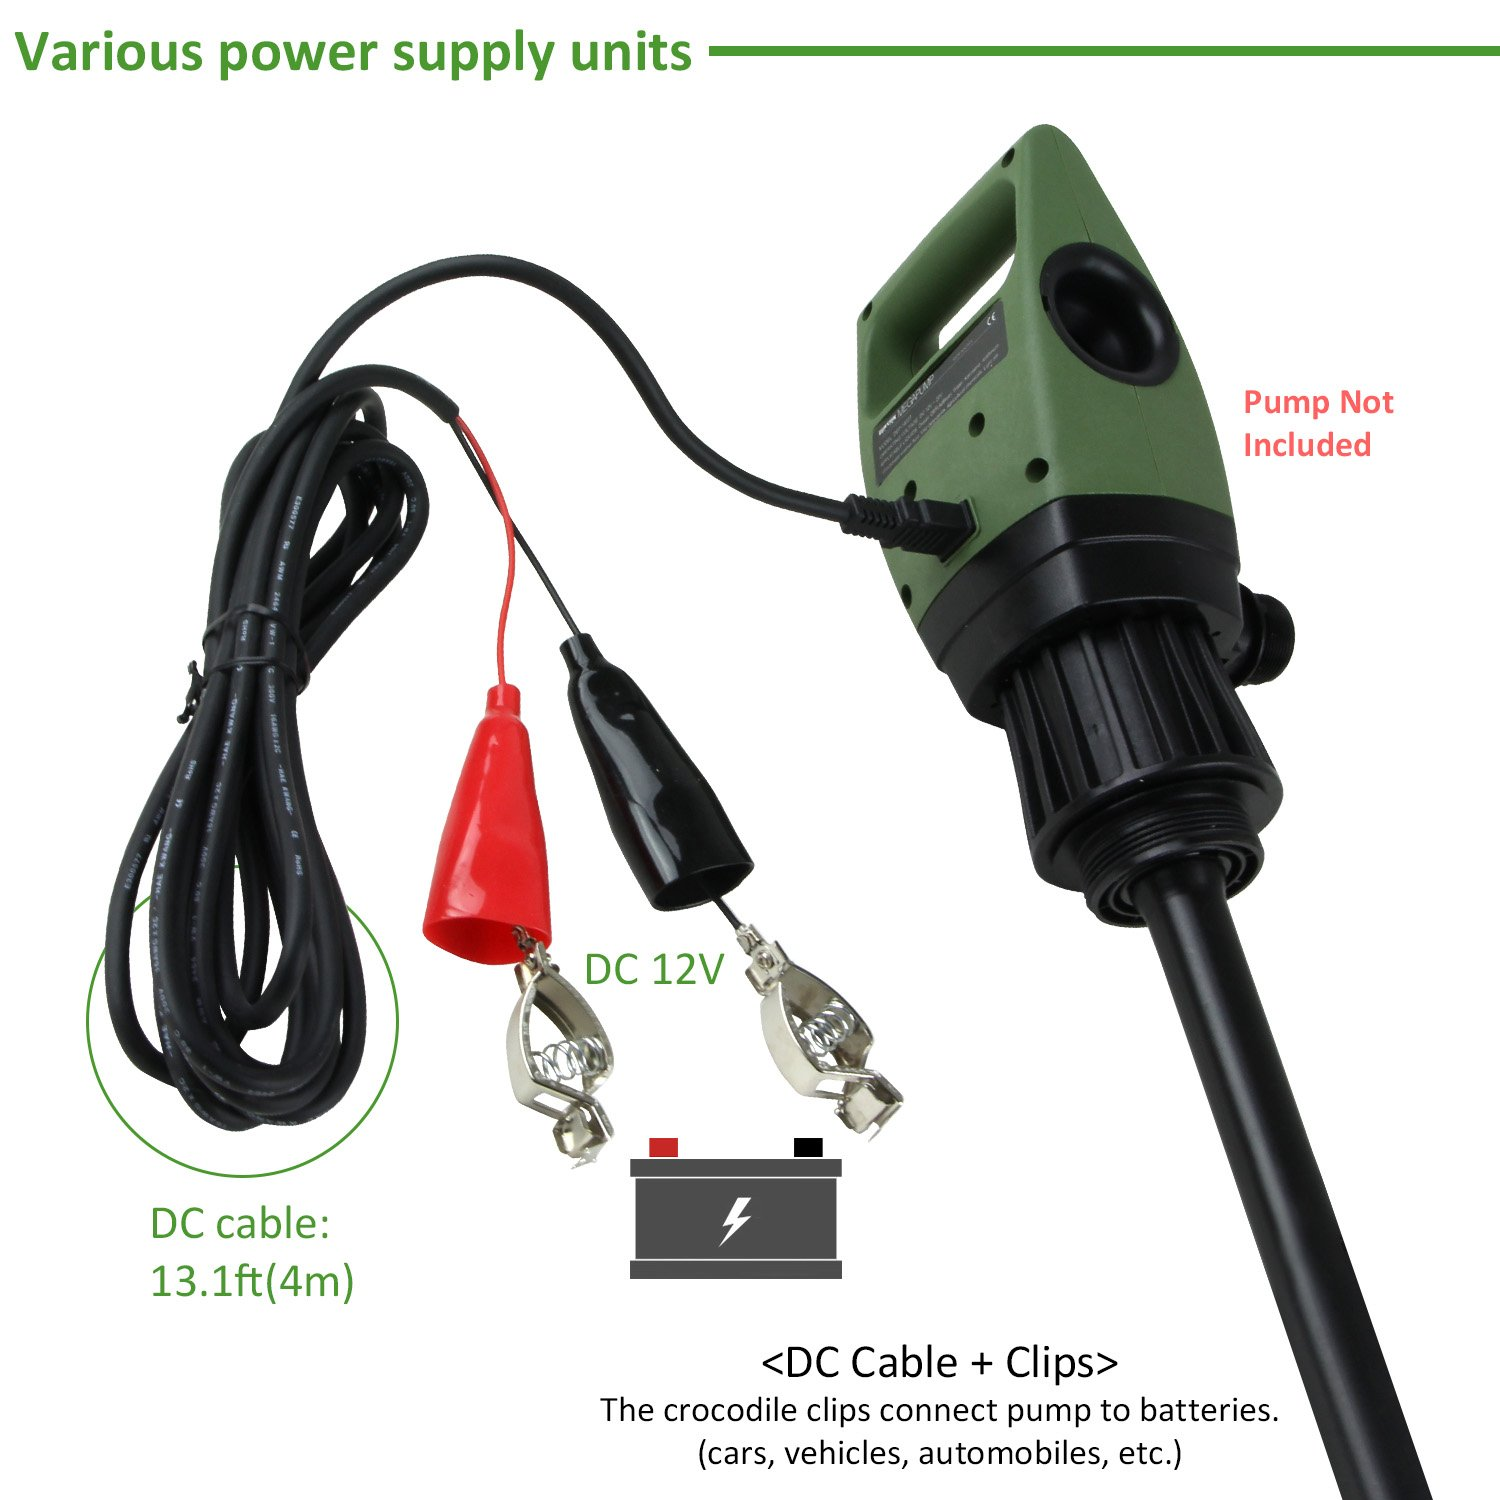 TERA PUMP DC Cable for Car/Marine Battery